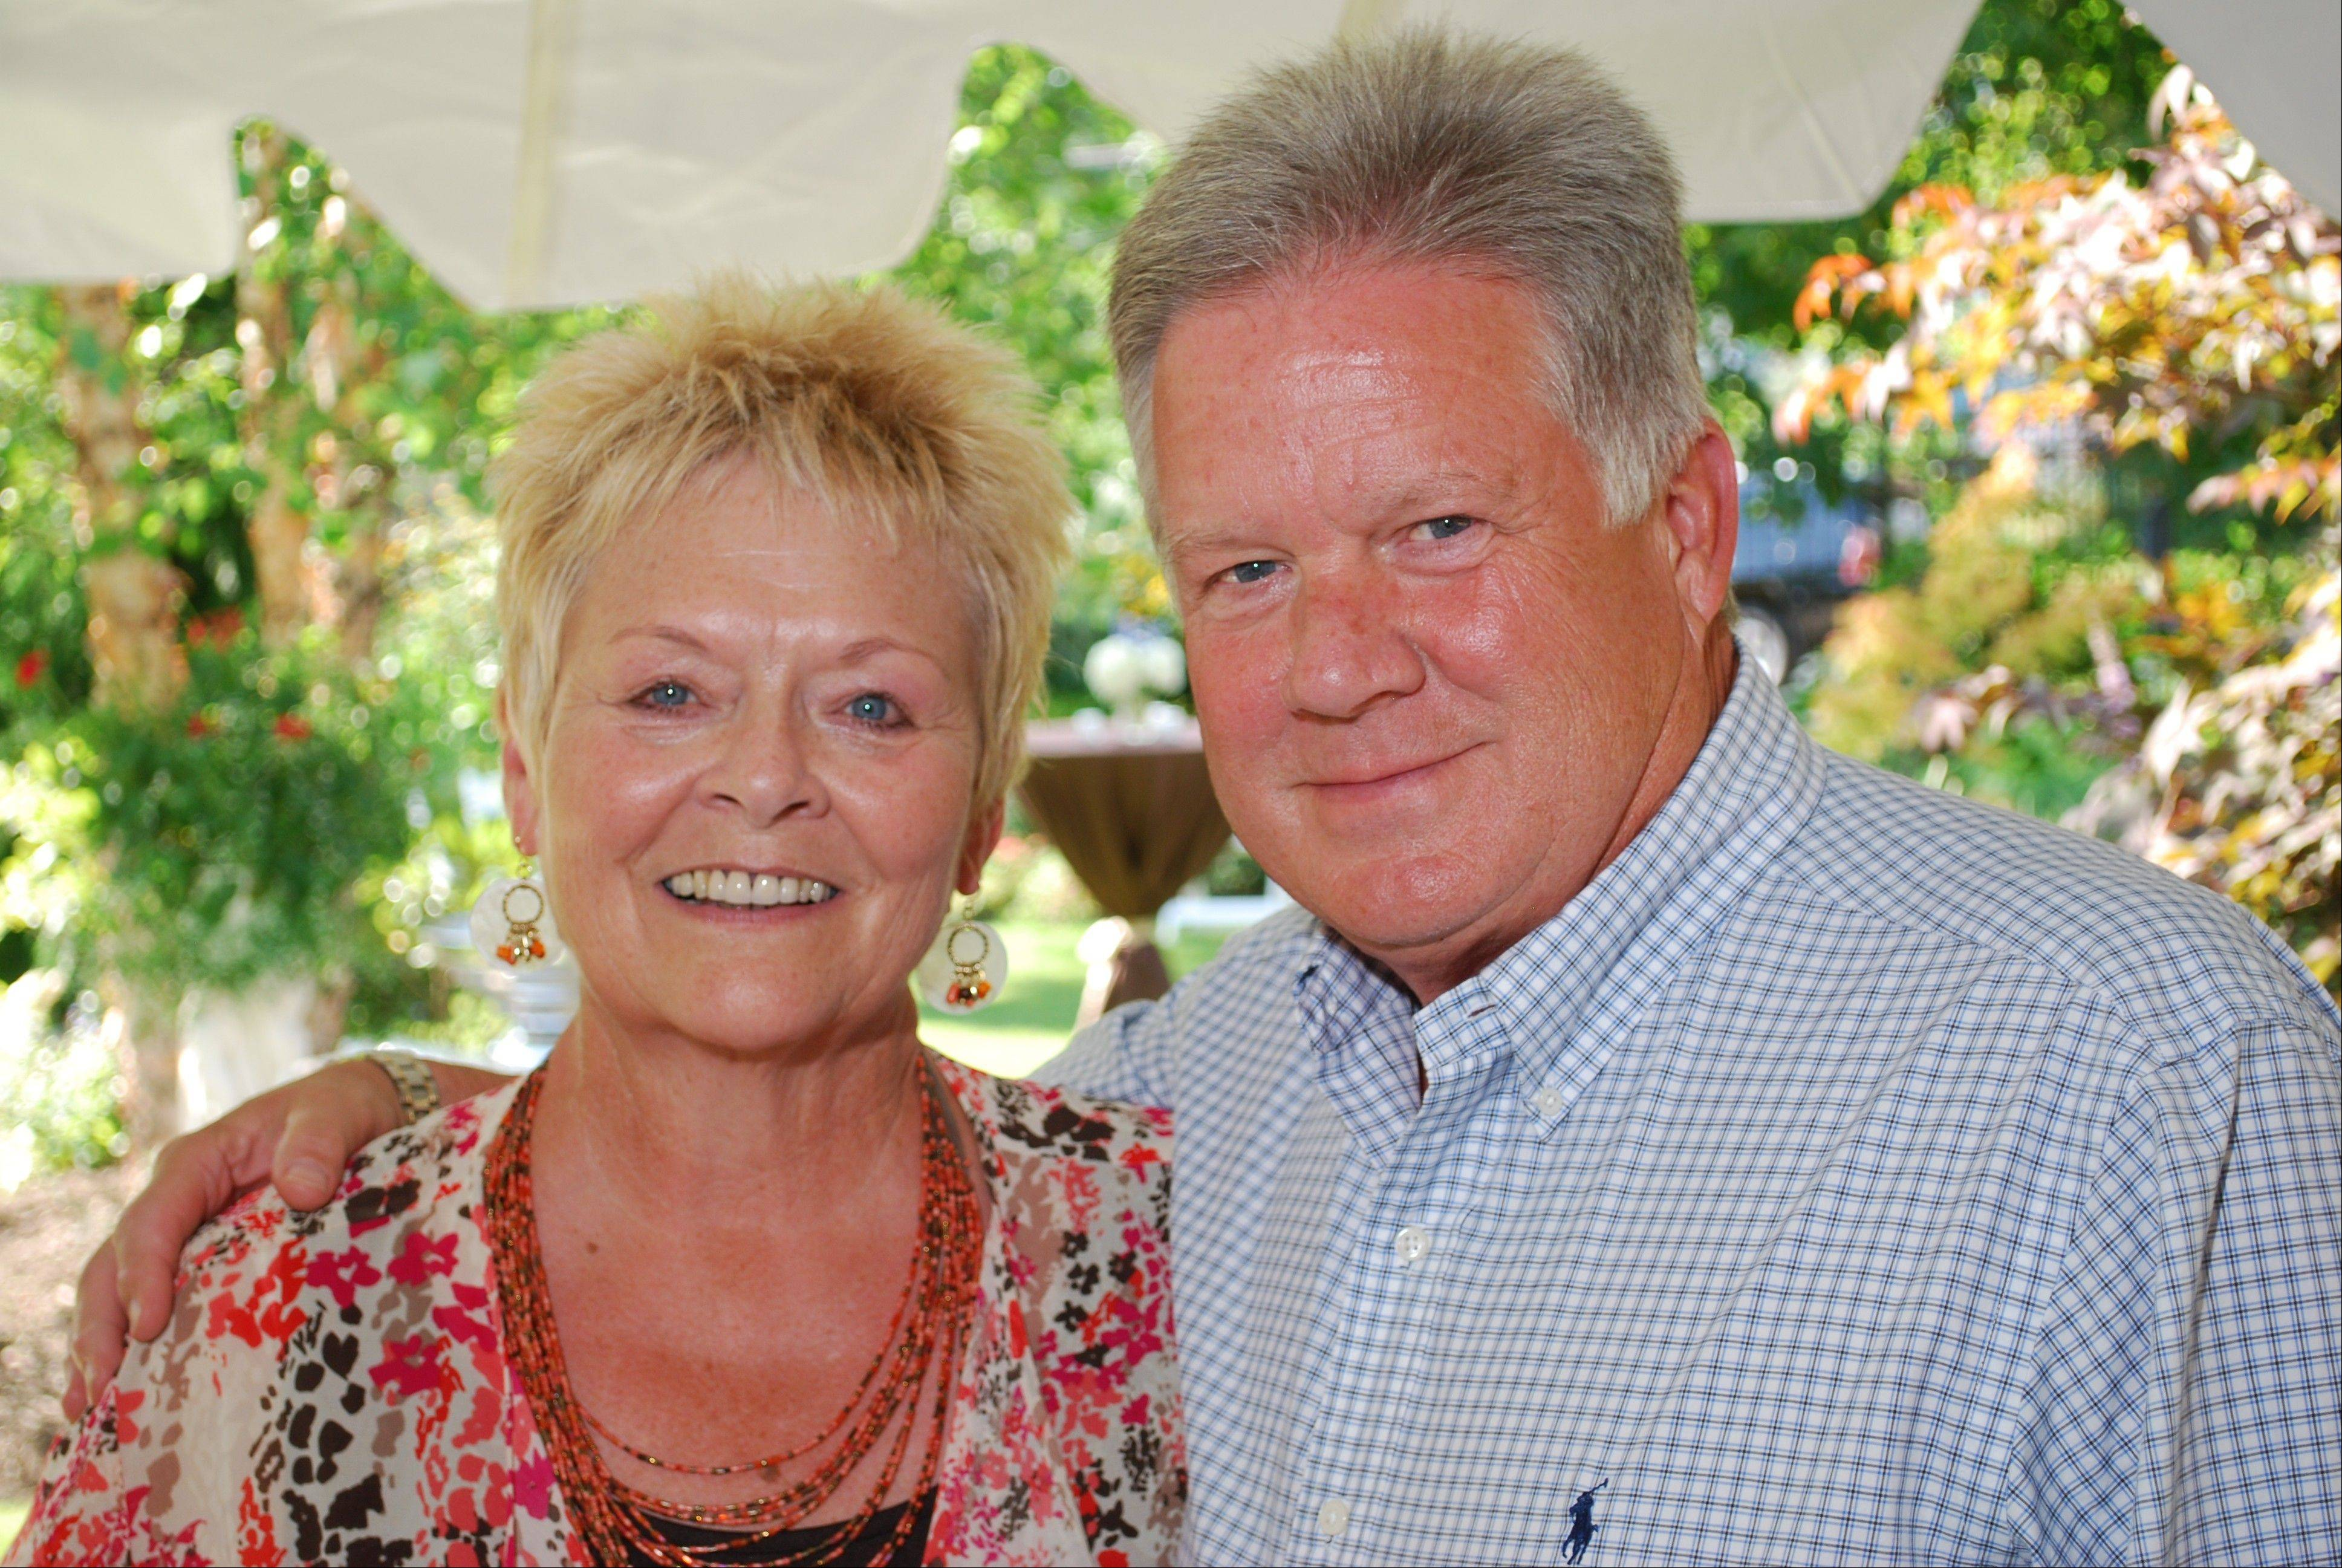 James and Johanna Blockinger have been selected as the 2012 Gurnee Days honorees.